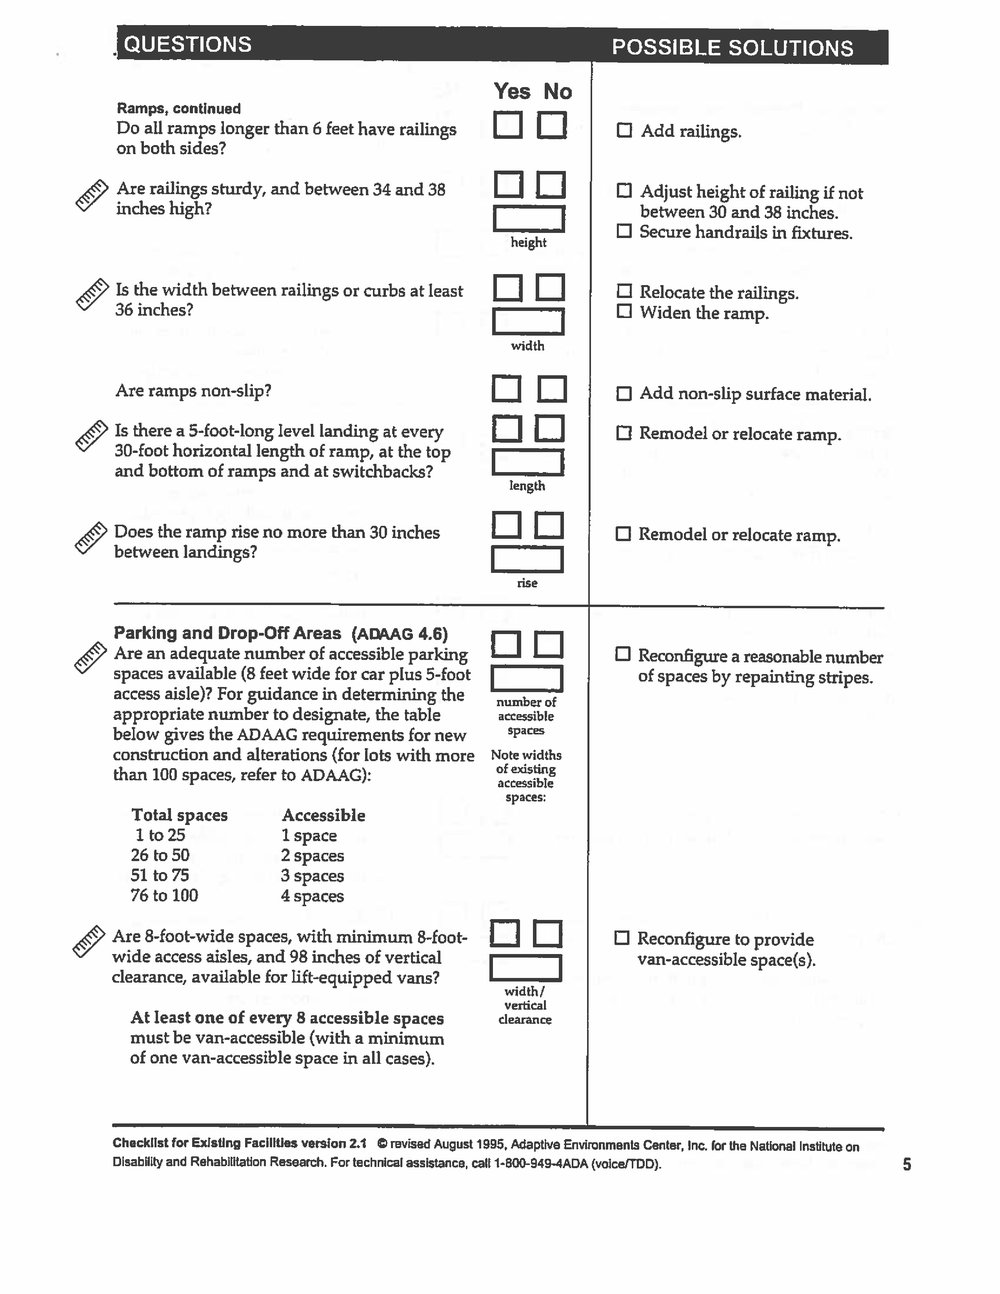 Checklist for Existing Facilities-page-4.jpg